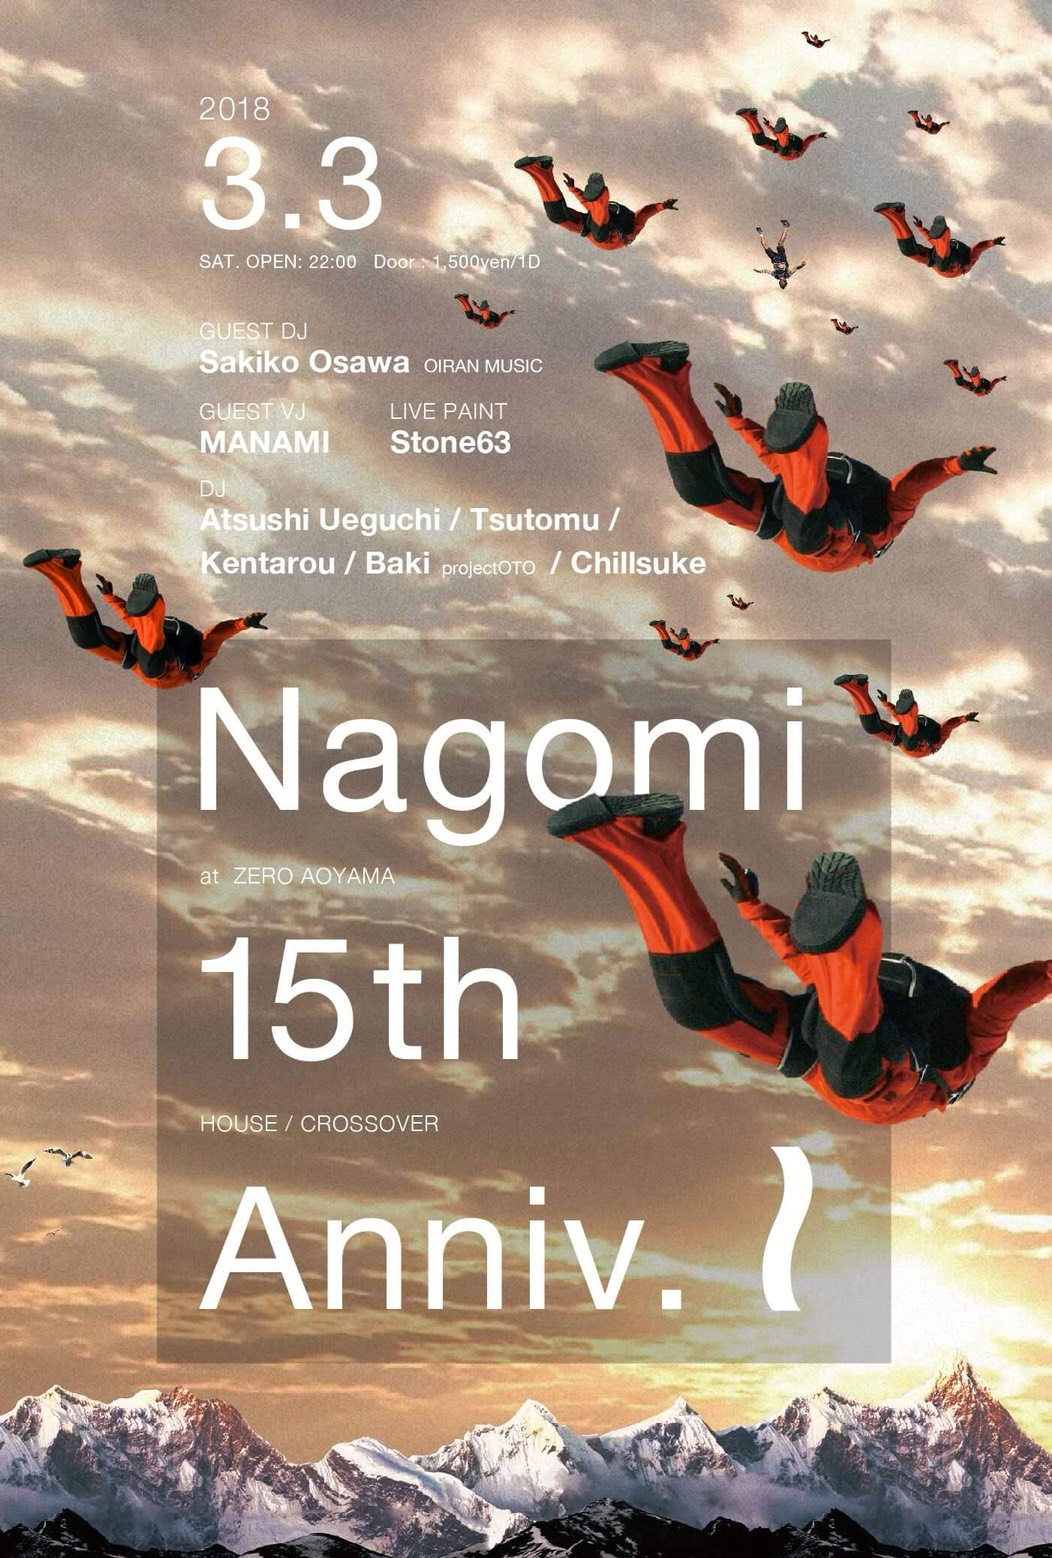 nagomi 15th Anniversary-1day-